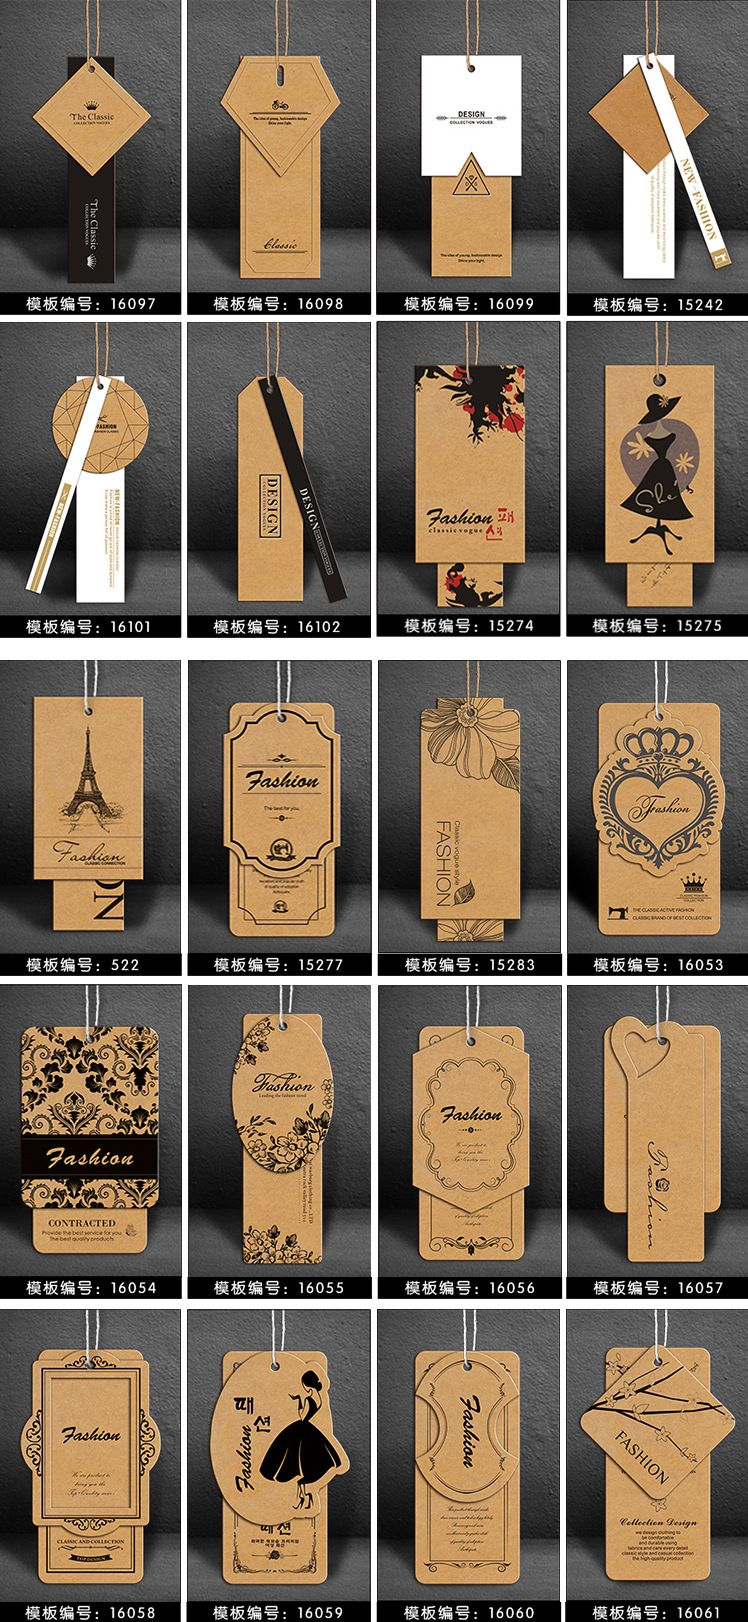 Clothing hang tags and paper bag manufacturers | tag | Paper bag